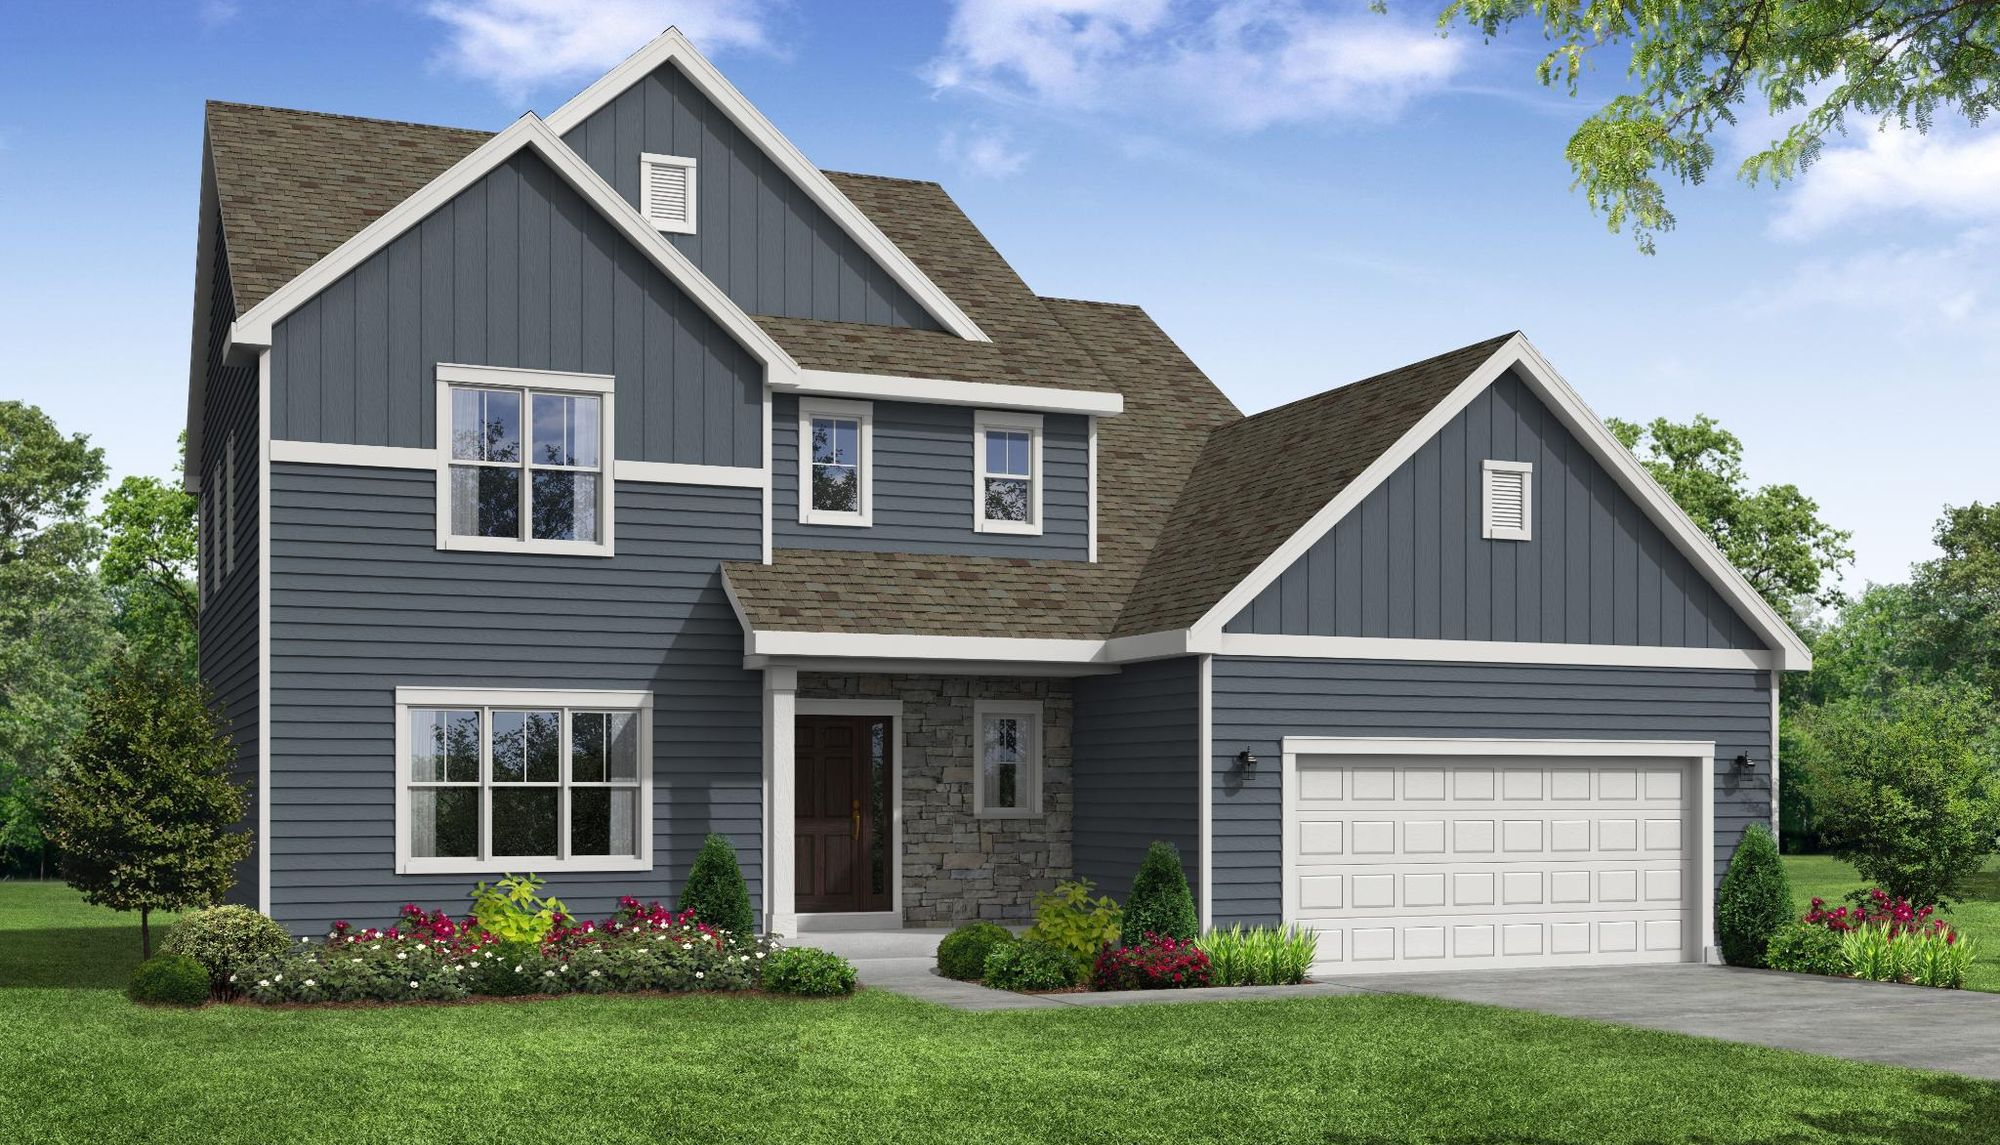 Evergreen Farmhouse Front Elevation Rendering